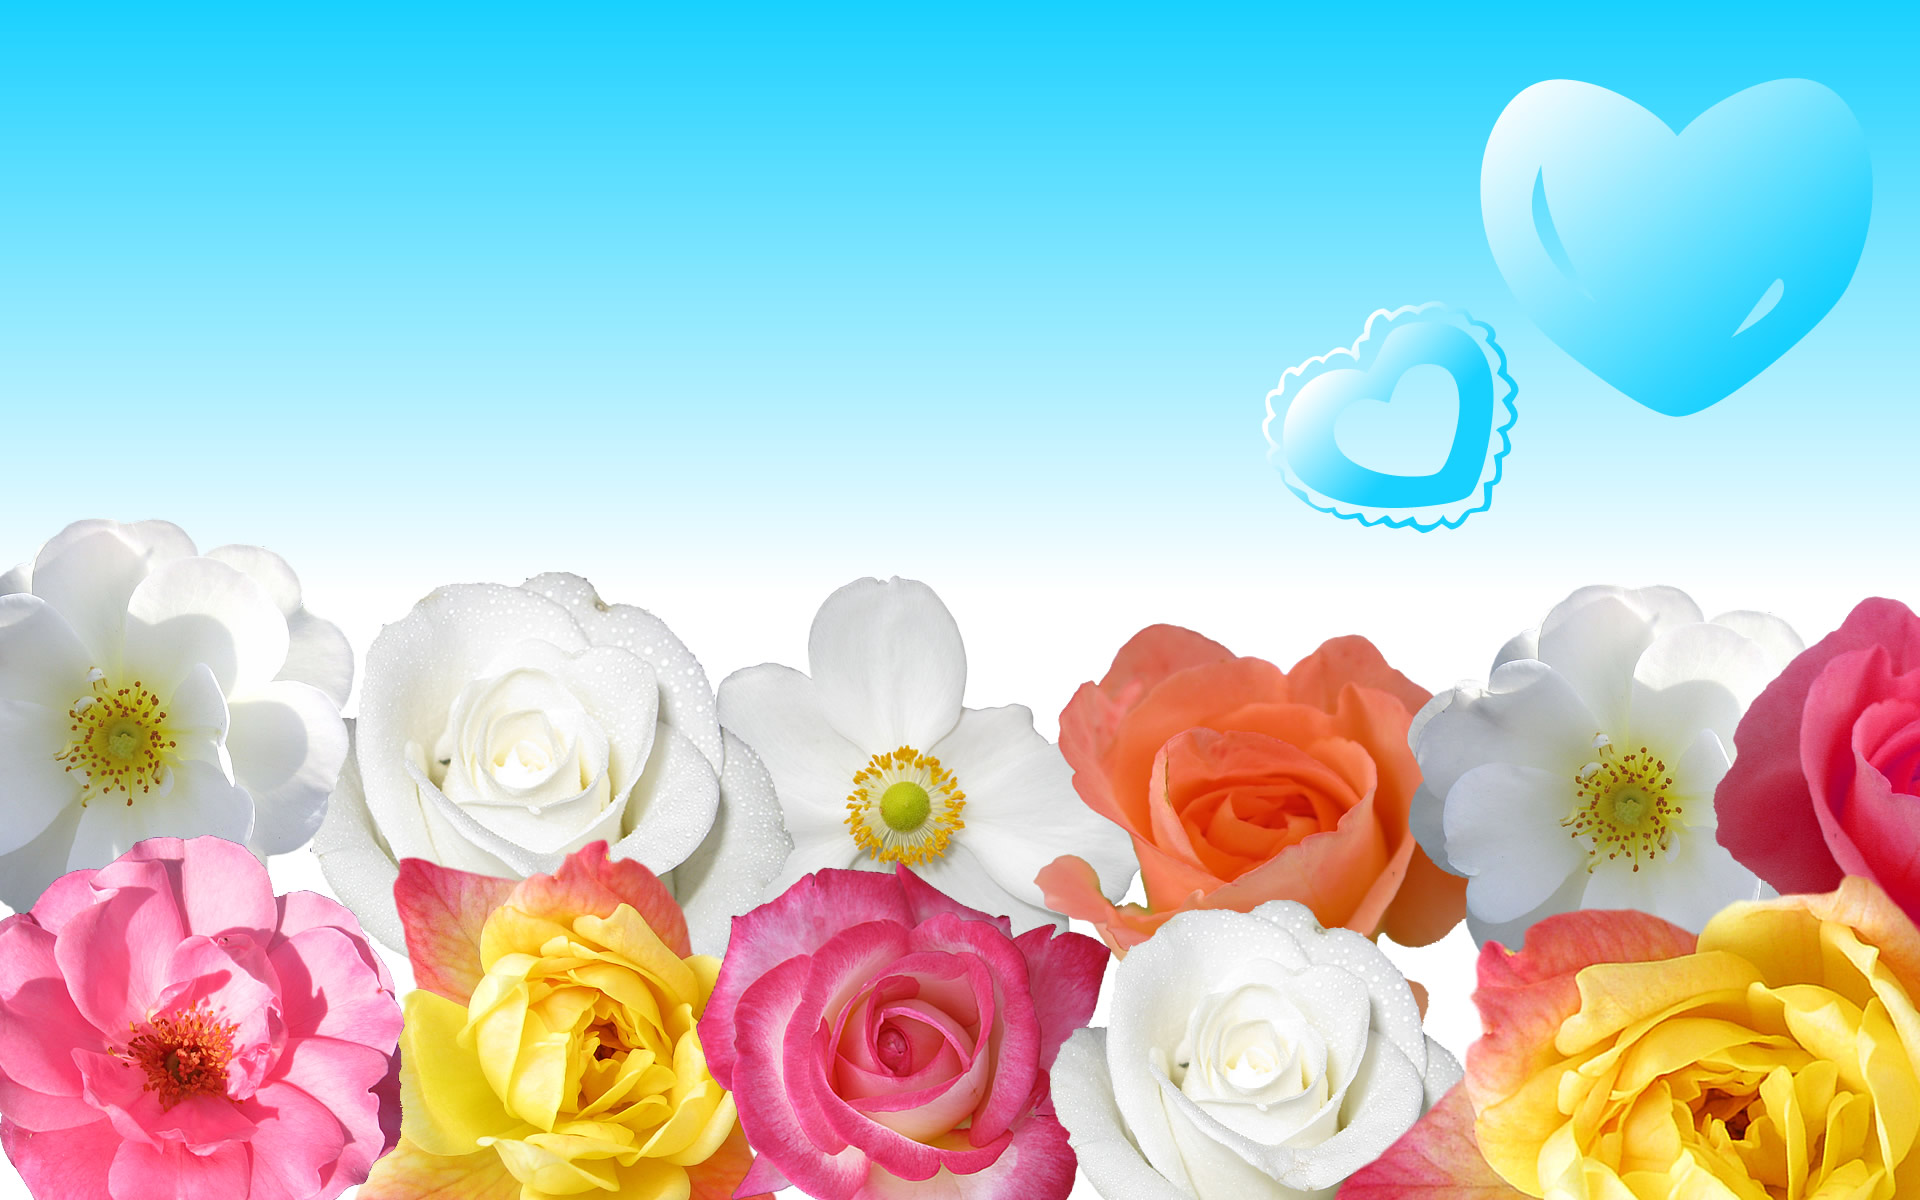 Flowers Wallpaper Download 1219